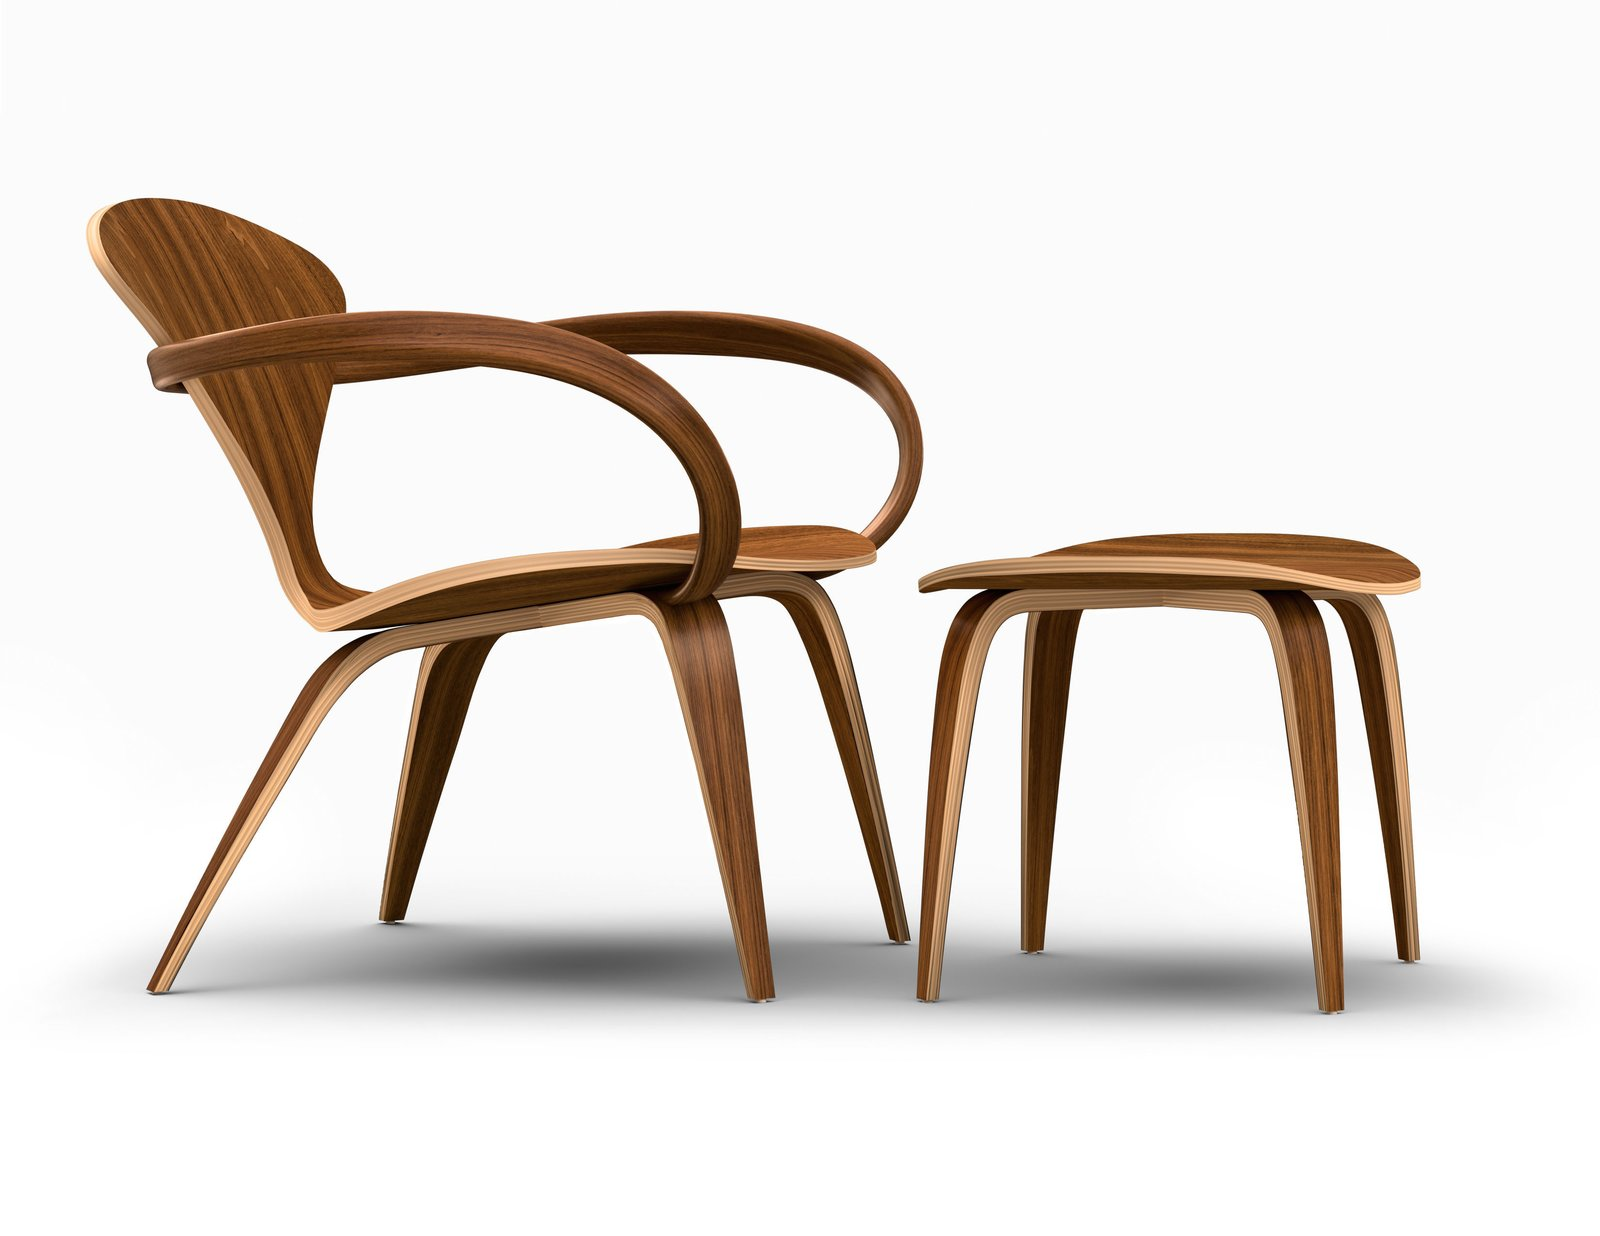 The side view of the Cherner Lounge Arm Chair and Ottoman showcases the sinuous curvature of the molded plywood. This design recalls the look of the original chair designed by Norman Cherner in 1958.  Photo 12 of 24 in A Cherner Chair Retrospective from Reviving Classics with The Cherner Chair Company